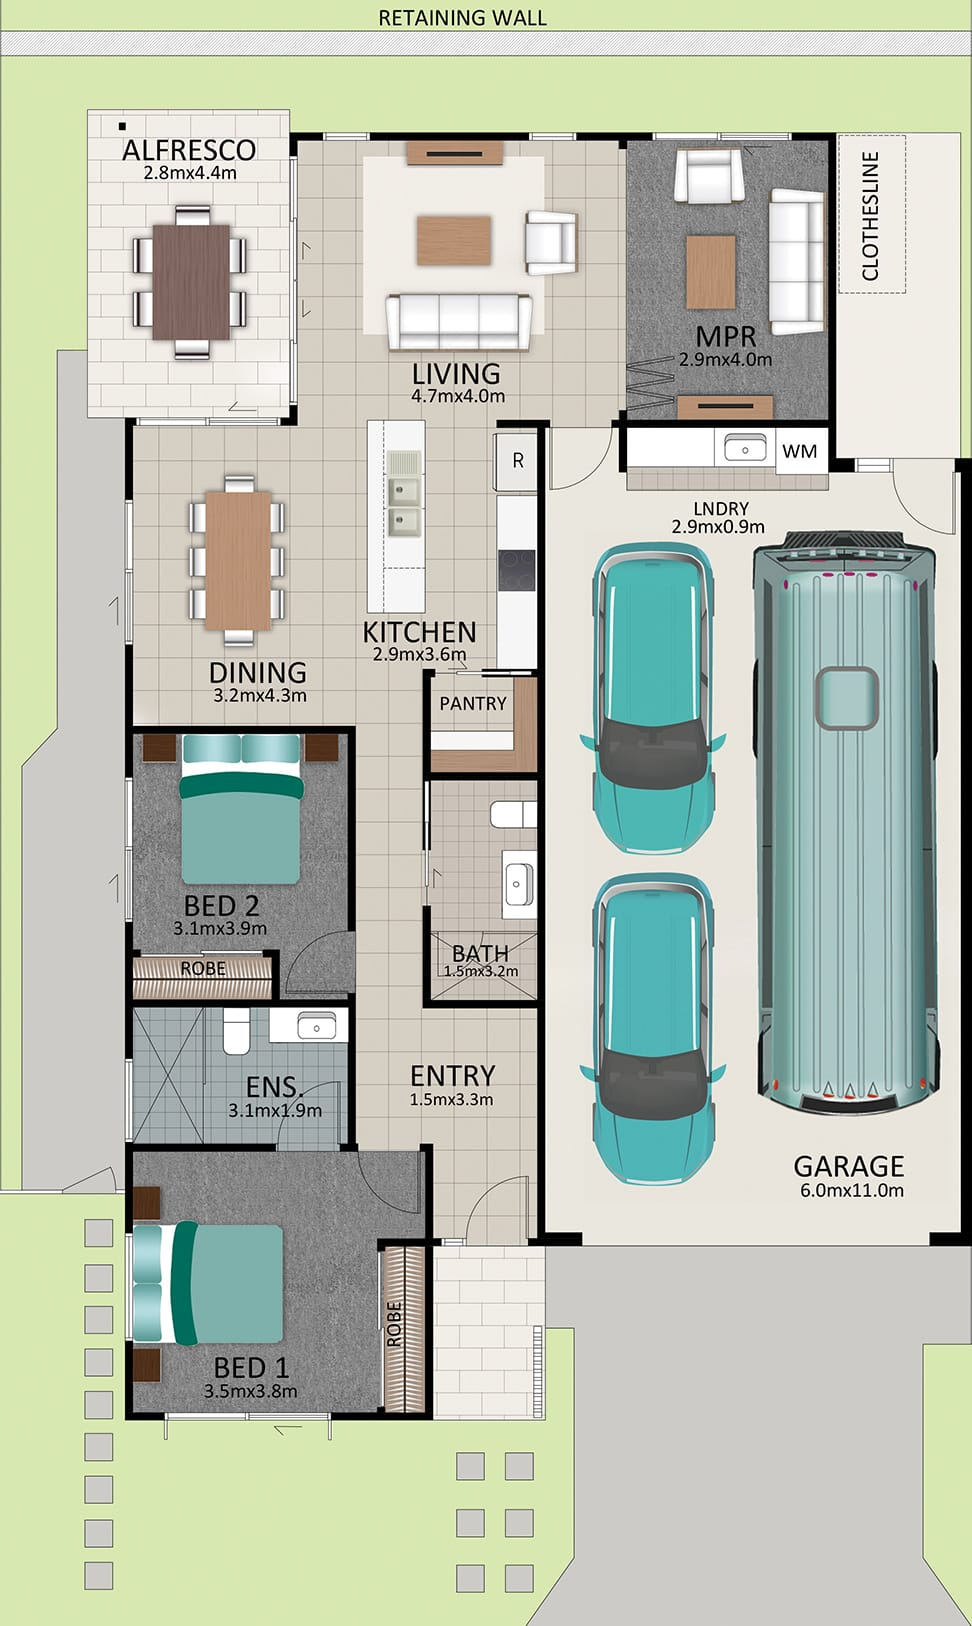 LAT25 Floorplan GAL OCT20 LOT 204 - Lot 204